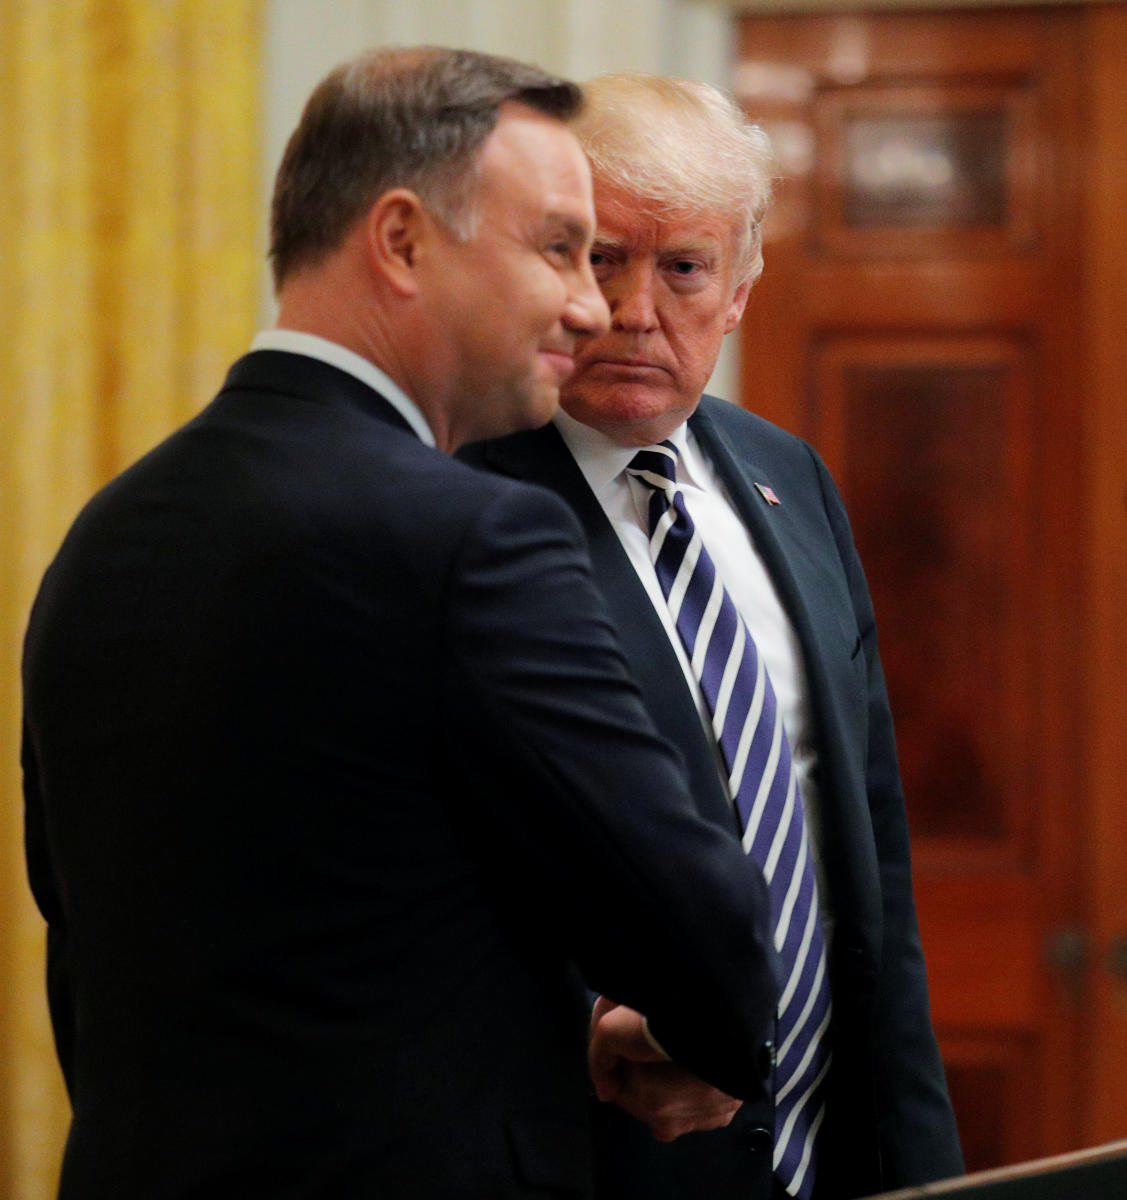 US President Donald Trump with Poland's President Andrzej Duda at the end of a joint news conference in the East Room of the White House in Washington on September 18, 2018. Reuters